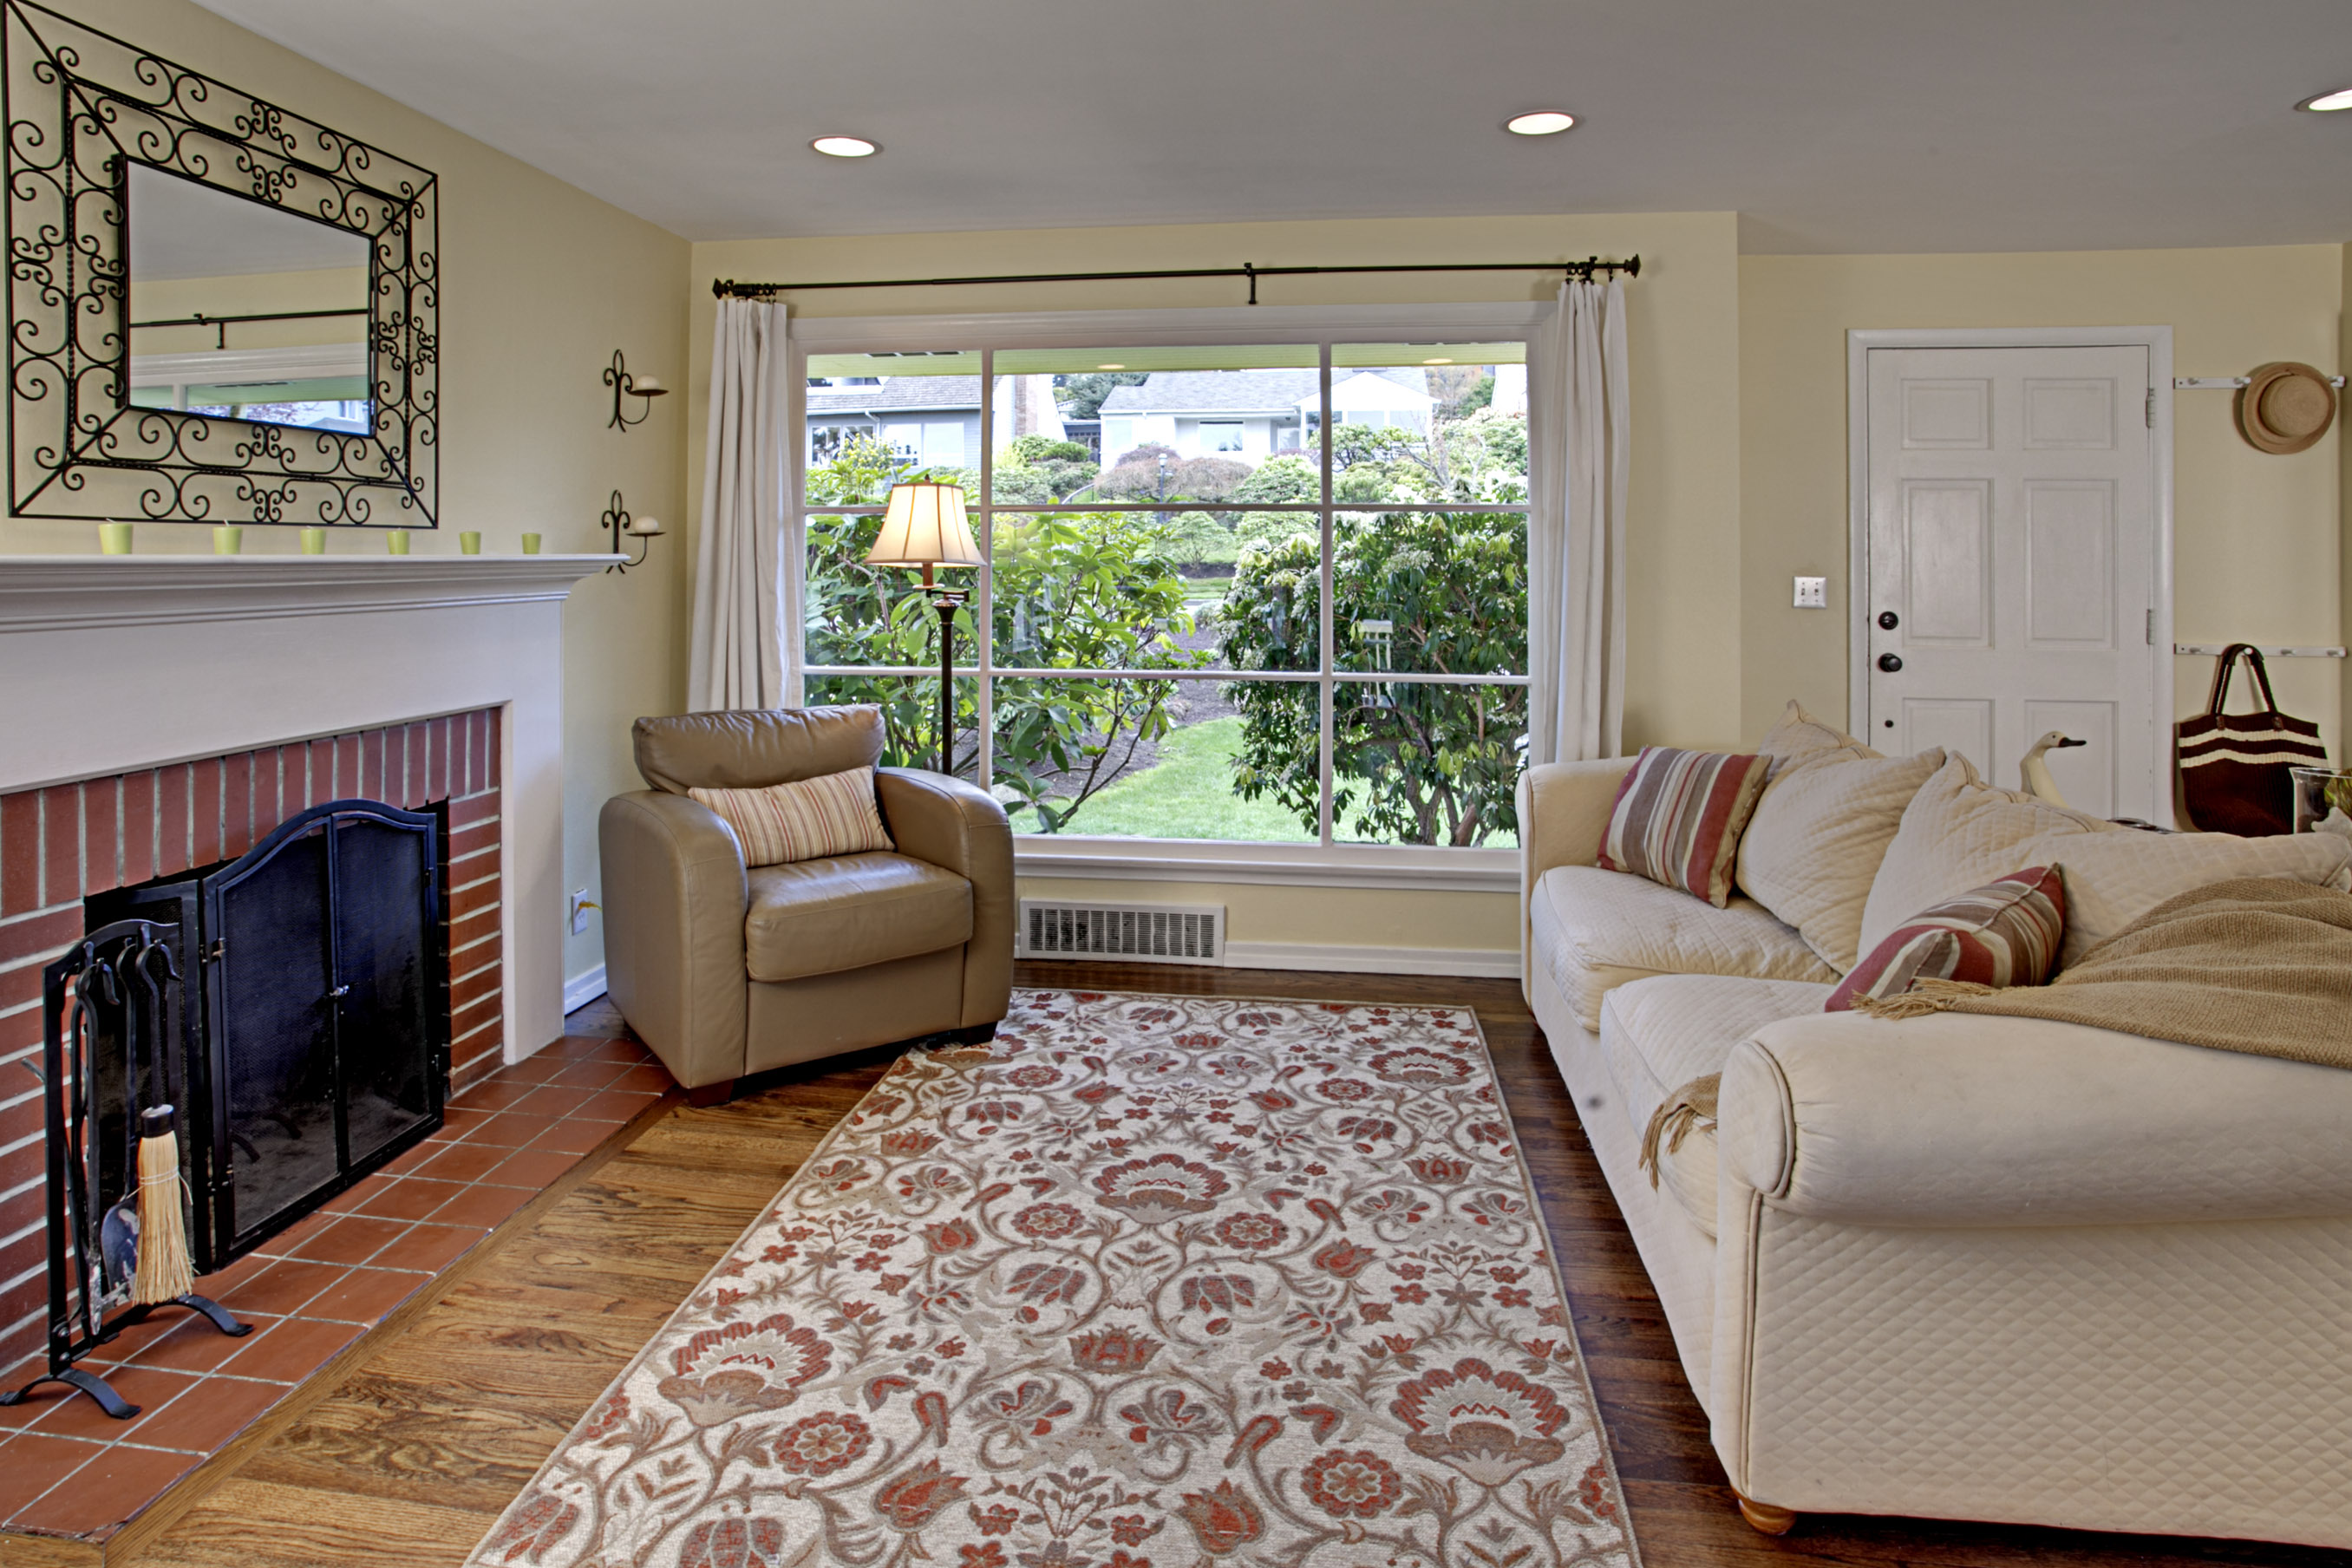 cape cod style house living room interior design ideas for before after a cozy gets makeover hooked on houses here s